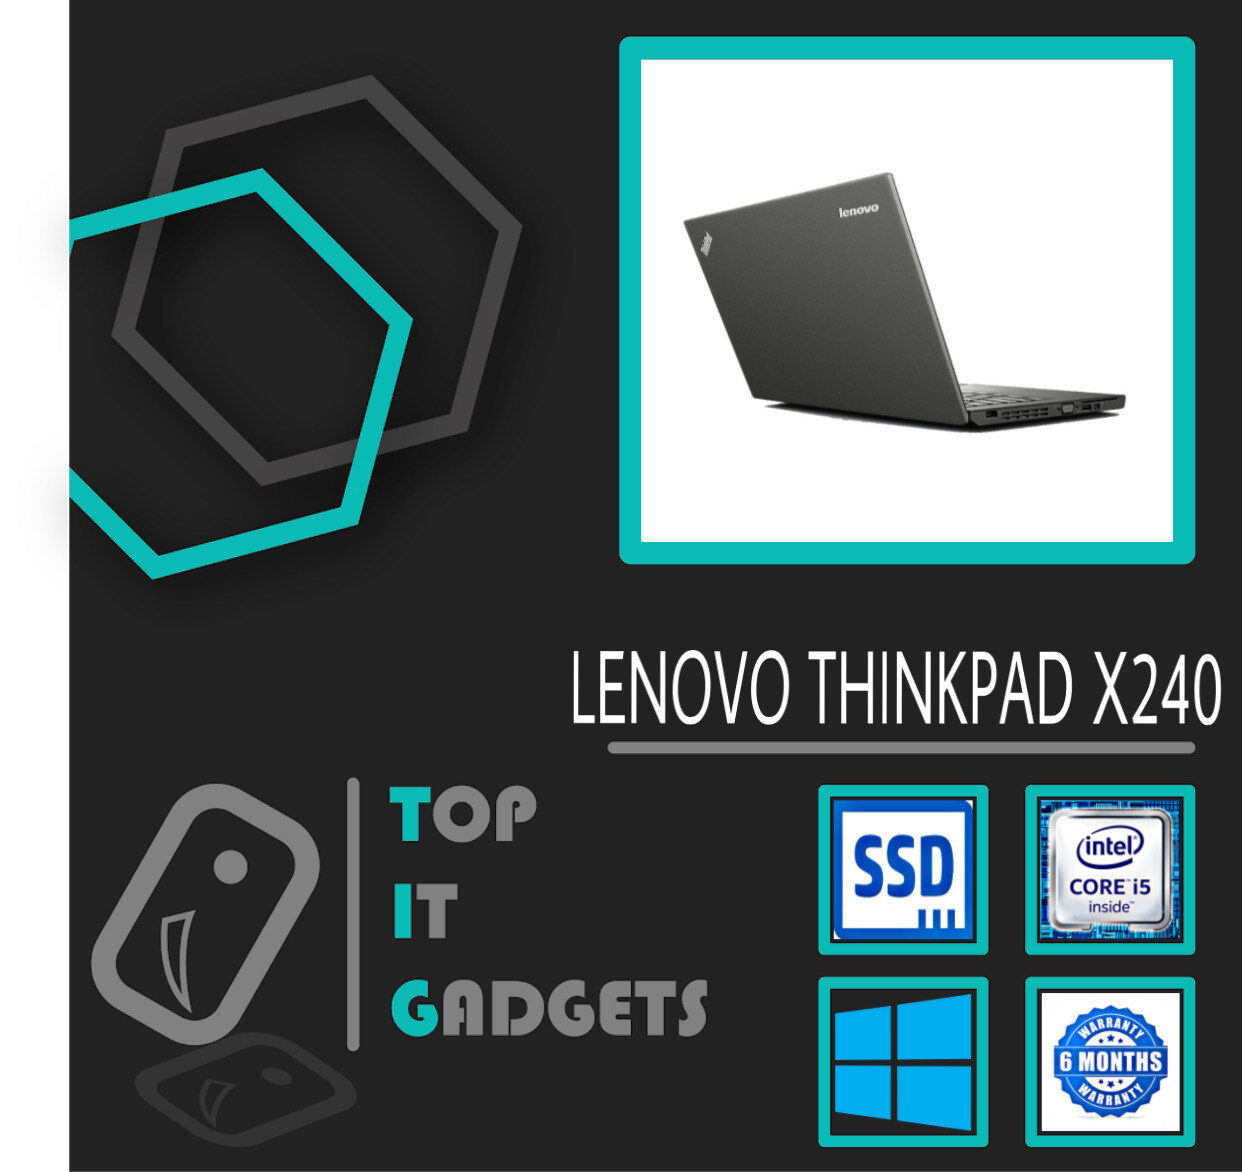 LENOVO THINKPAD X240 INTEL CORE i5 -4200U TURBO BOOST 2.60GHz / 8GB DDR3 RAM / 256GB SSD / INTEL HD GRAPHIC / 12.5 HD Malaysia